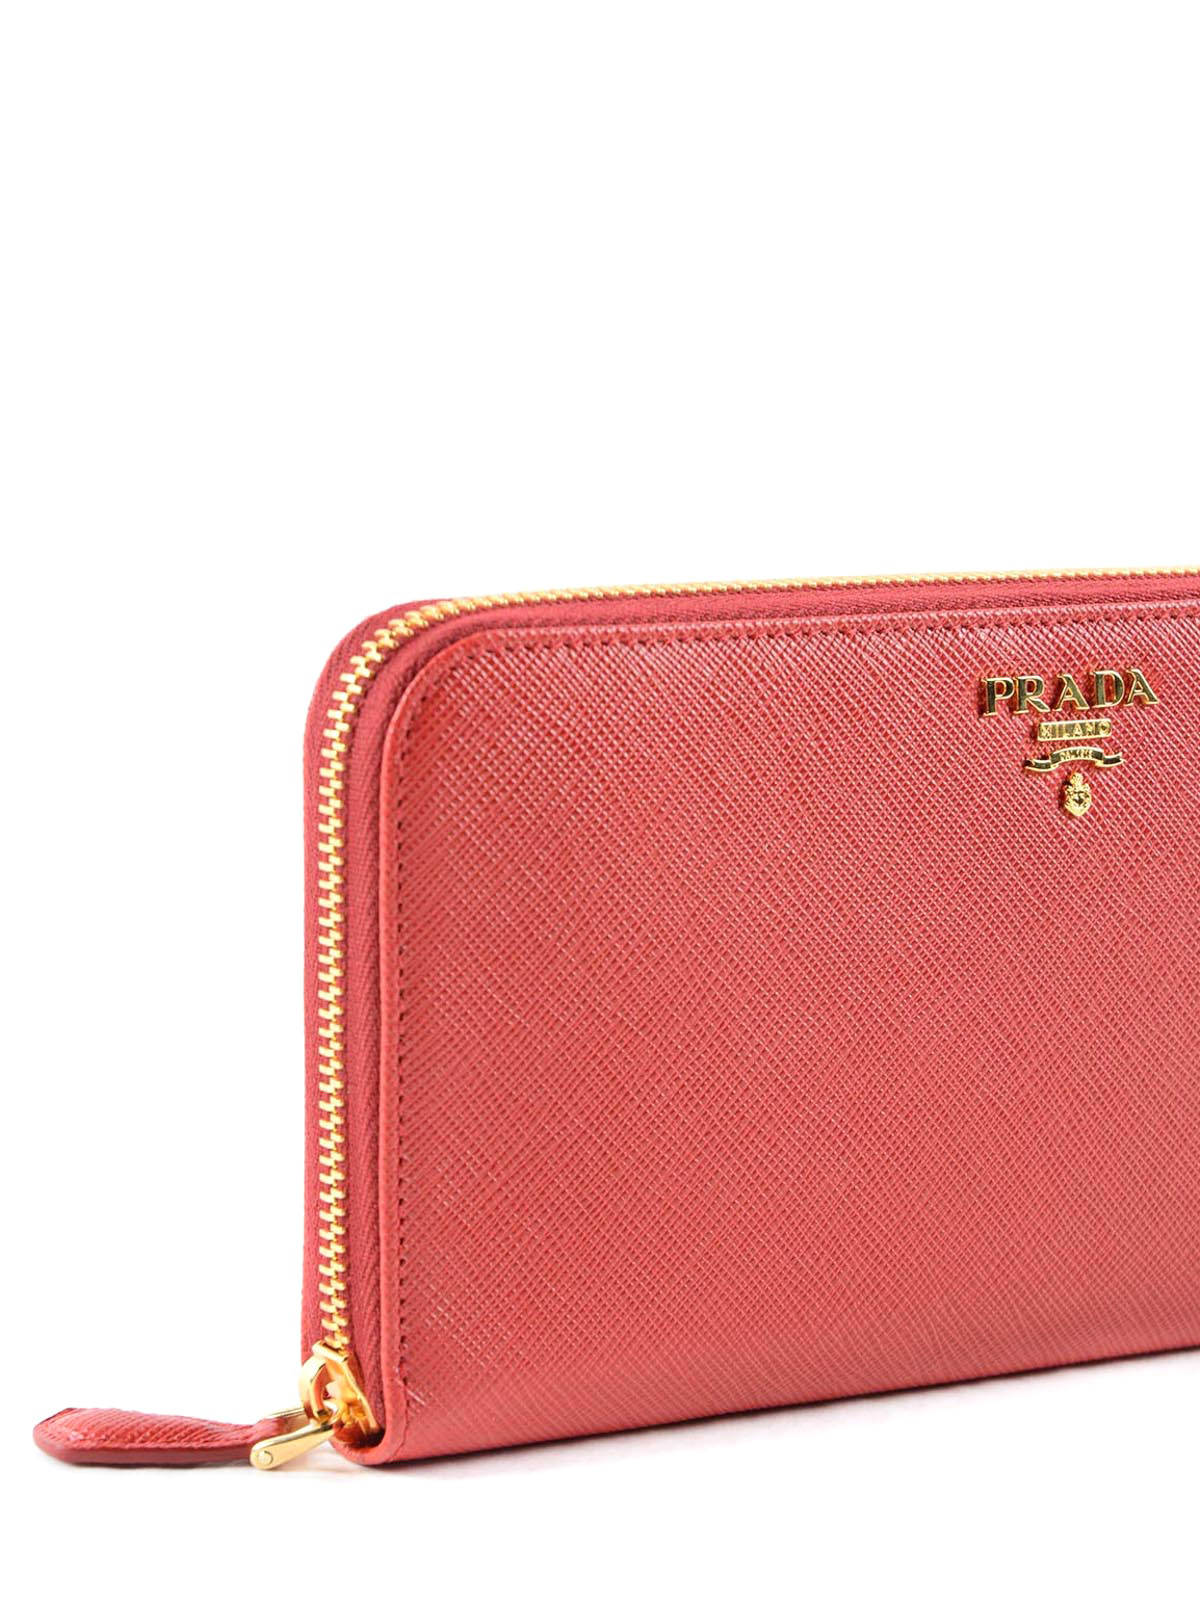 a1f9235403dc Prada Saffiano Wallet London | Stanford Center for Opportunity ...